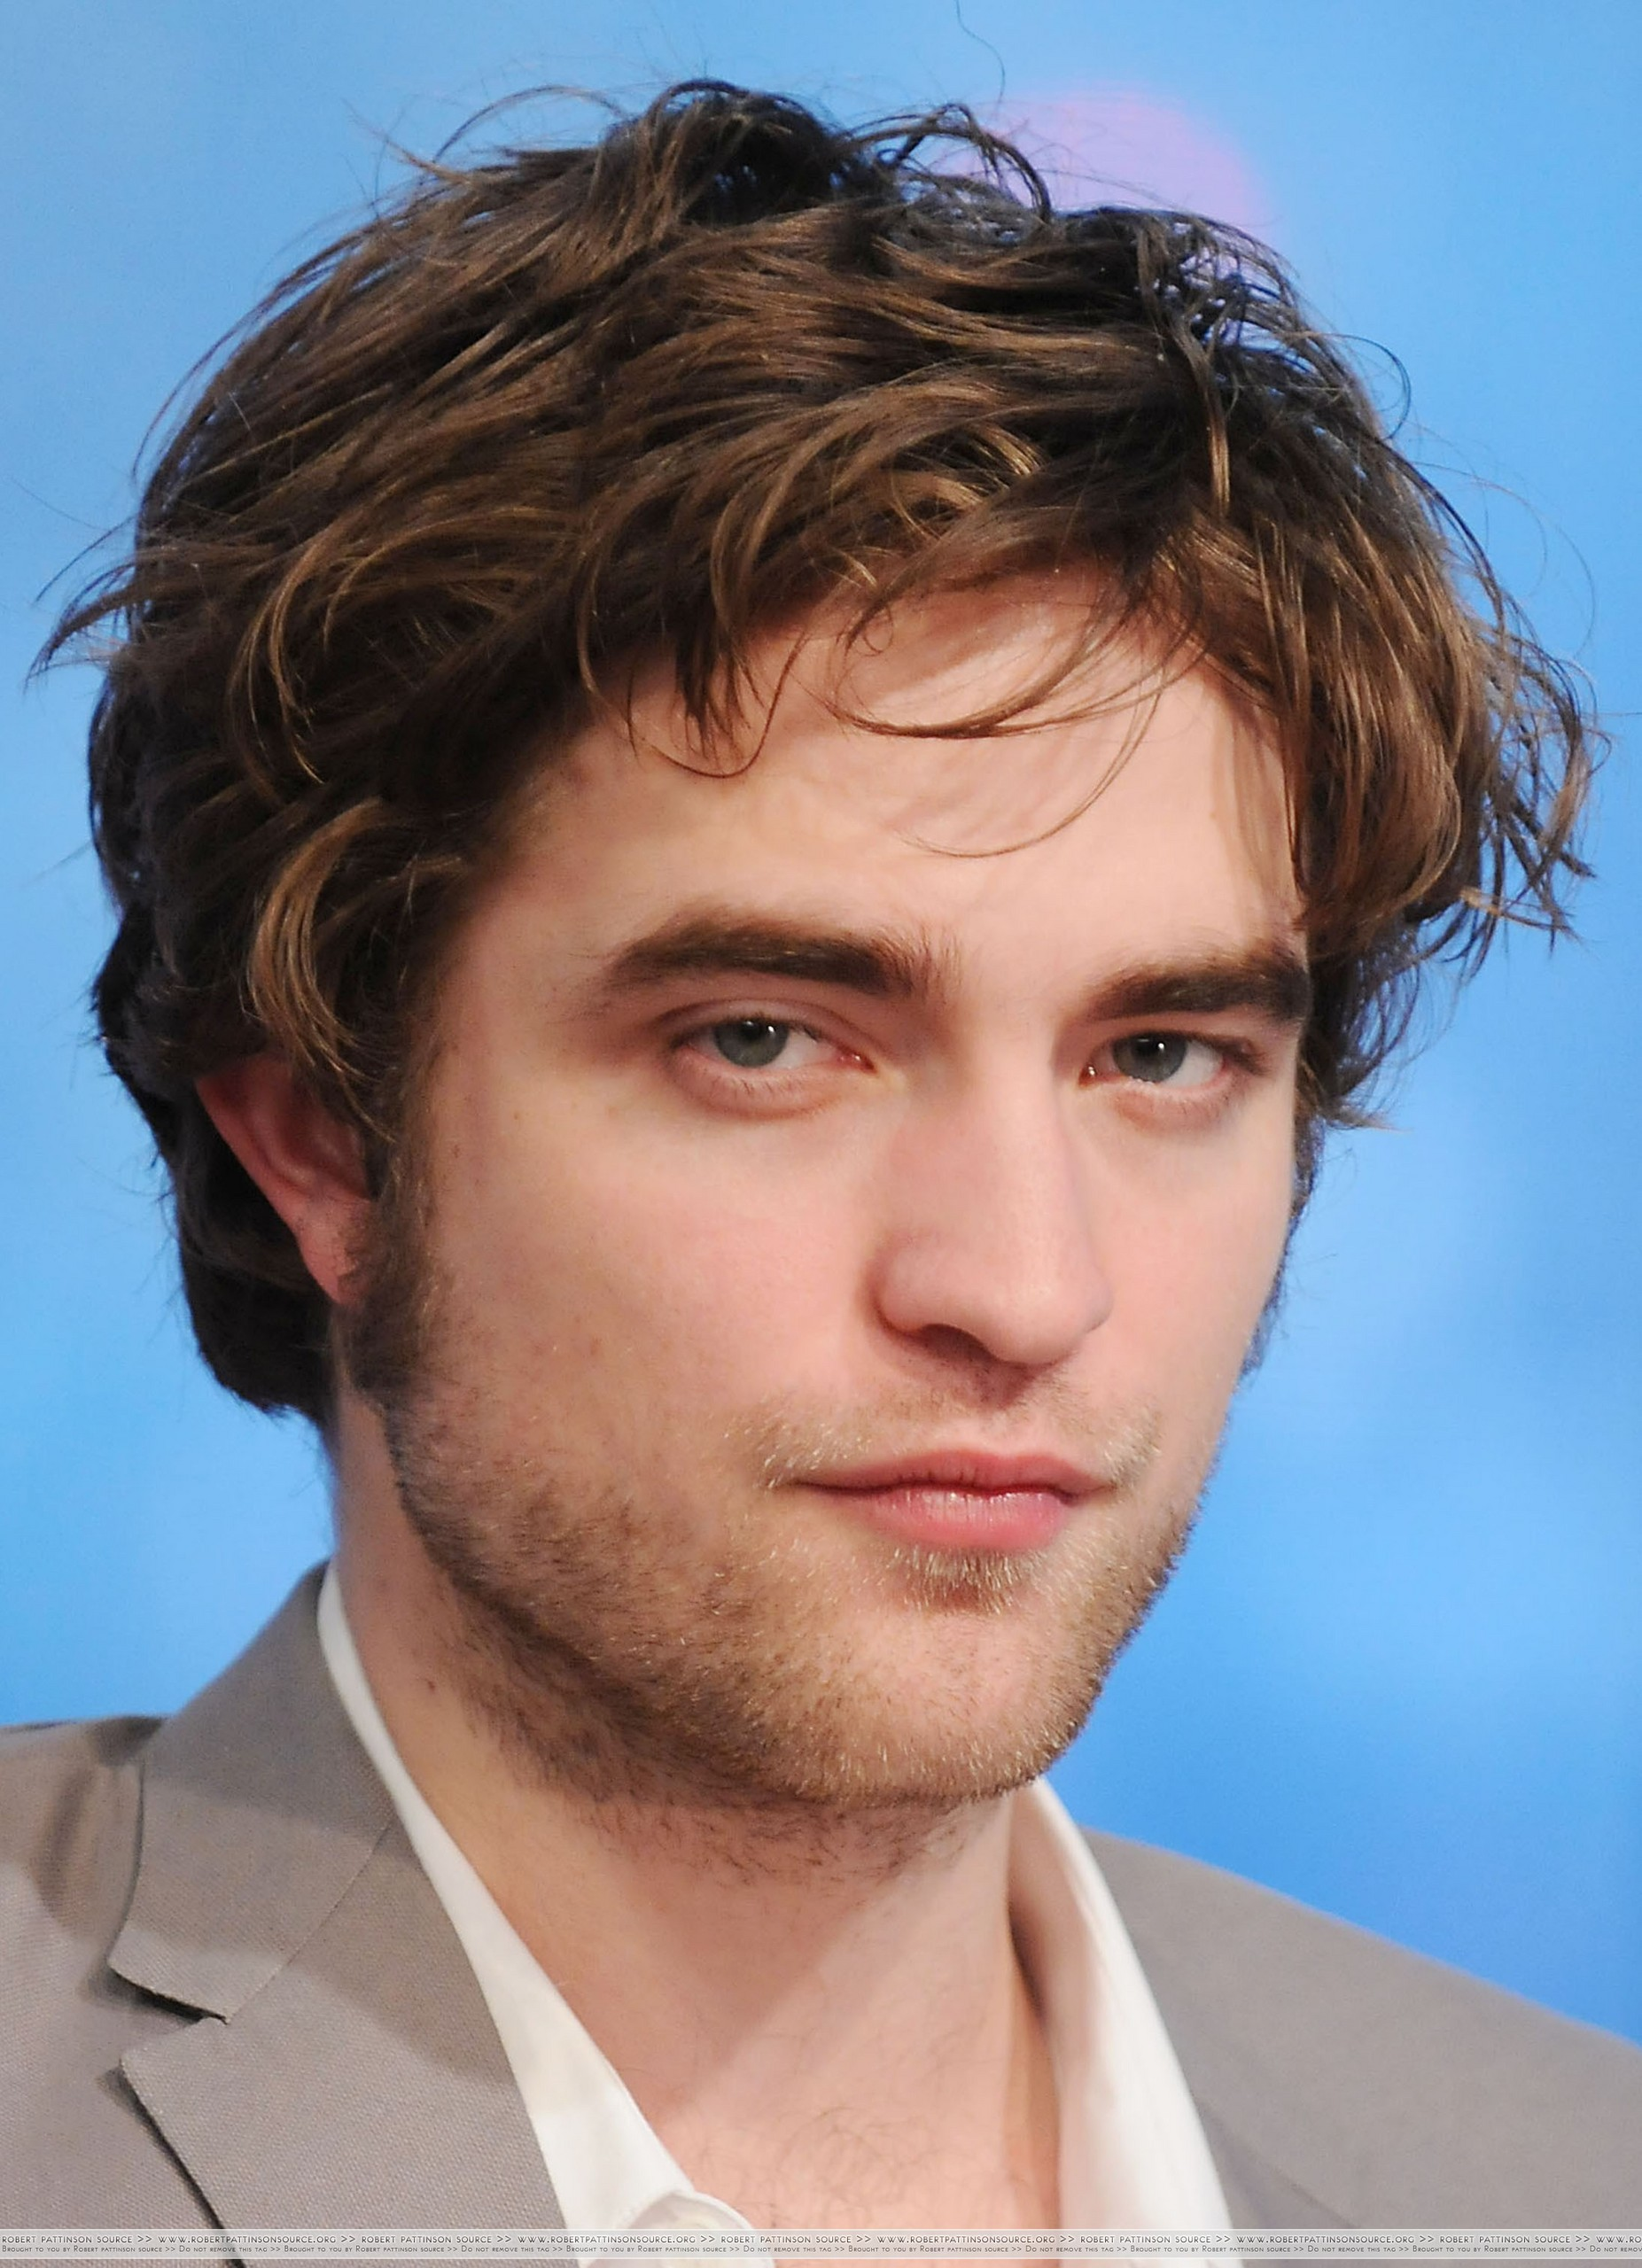 HQ Pictures of Rob on The Early toon